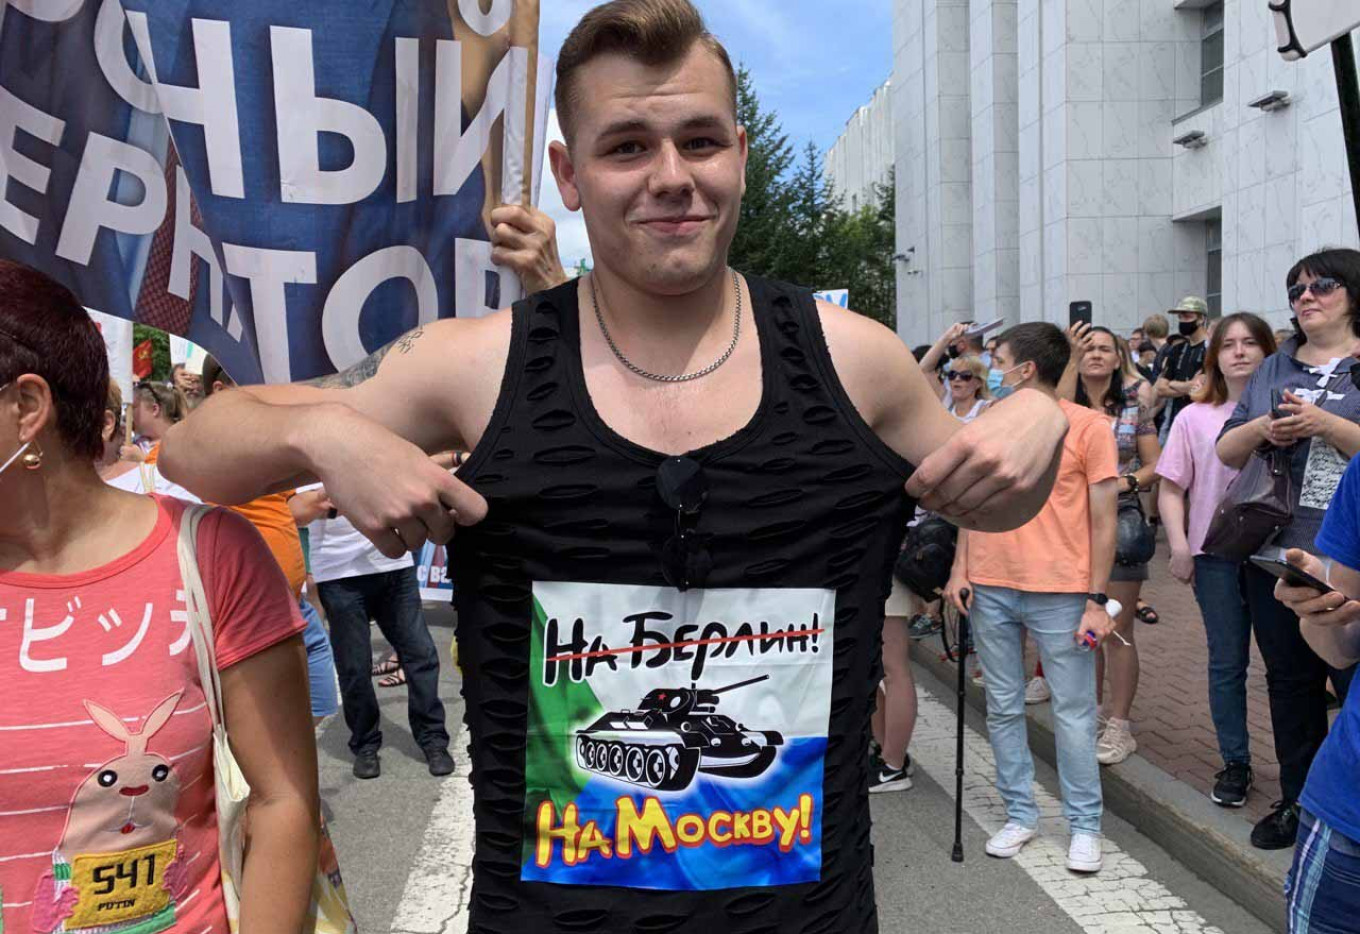 A protester in Khabarovsk on July 26 shows off his shirt. The WWII motto of taking Berlin has been replaced with Moscow. Evan Gershkovich / MT